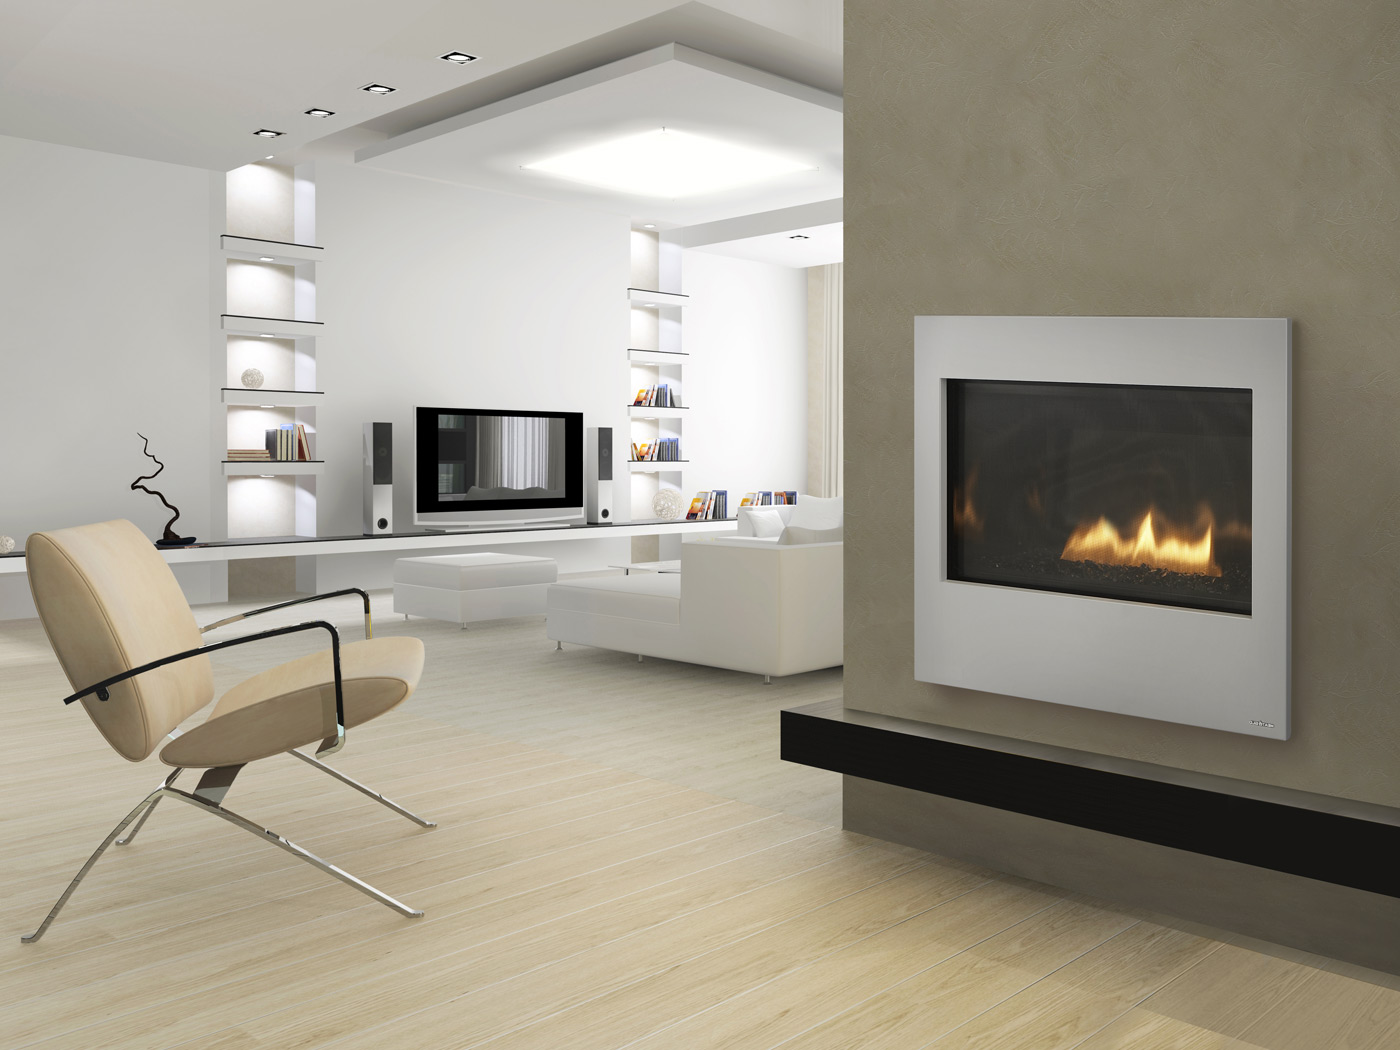 Fireplaces Gas Fireplace Luxury Lifestyle Design Architecture Blog By Ligia Emilia Fiedler